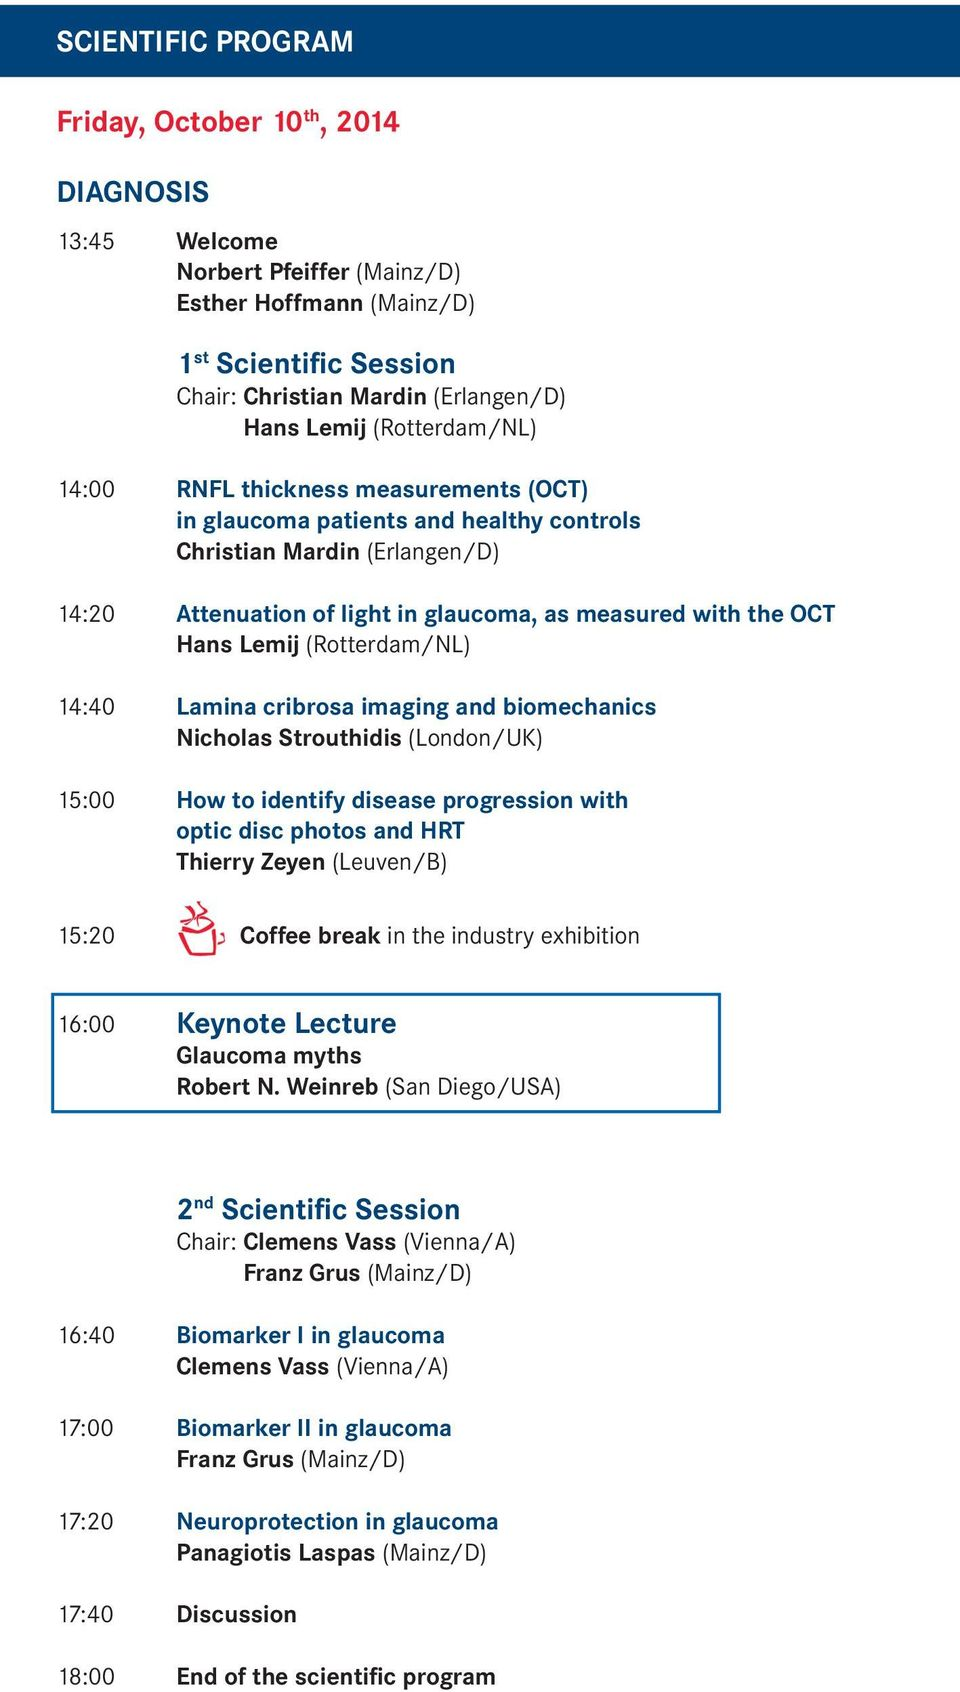 Lemij (Rotterdam/NL) 14:40 Lamina cribrosa imaging and biomechanics Nicholas Strouthidis (London/UK) 15:00 How to identify disease progression with optic disc photos and HRT Thierry Zeyen (Leuven/B)